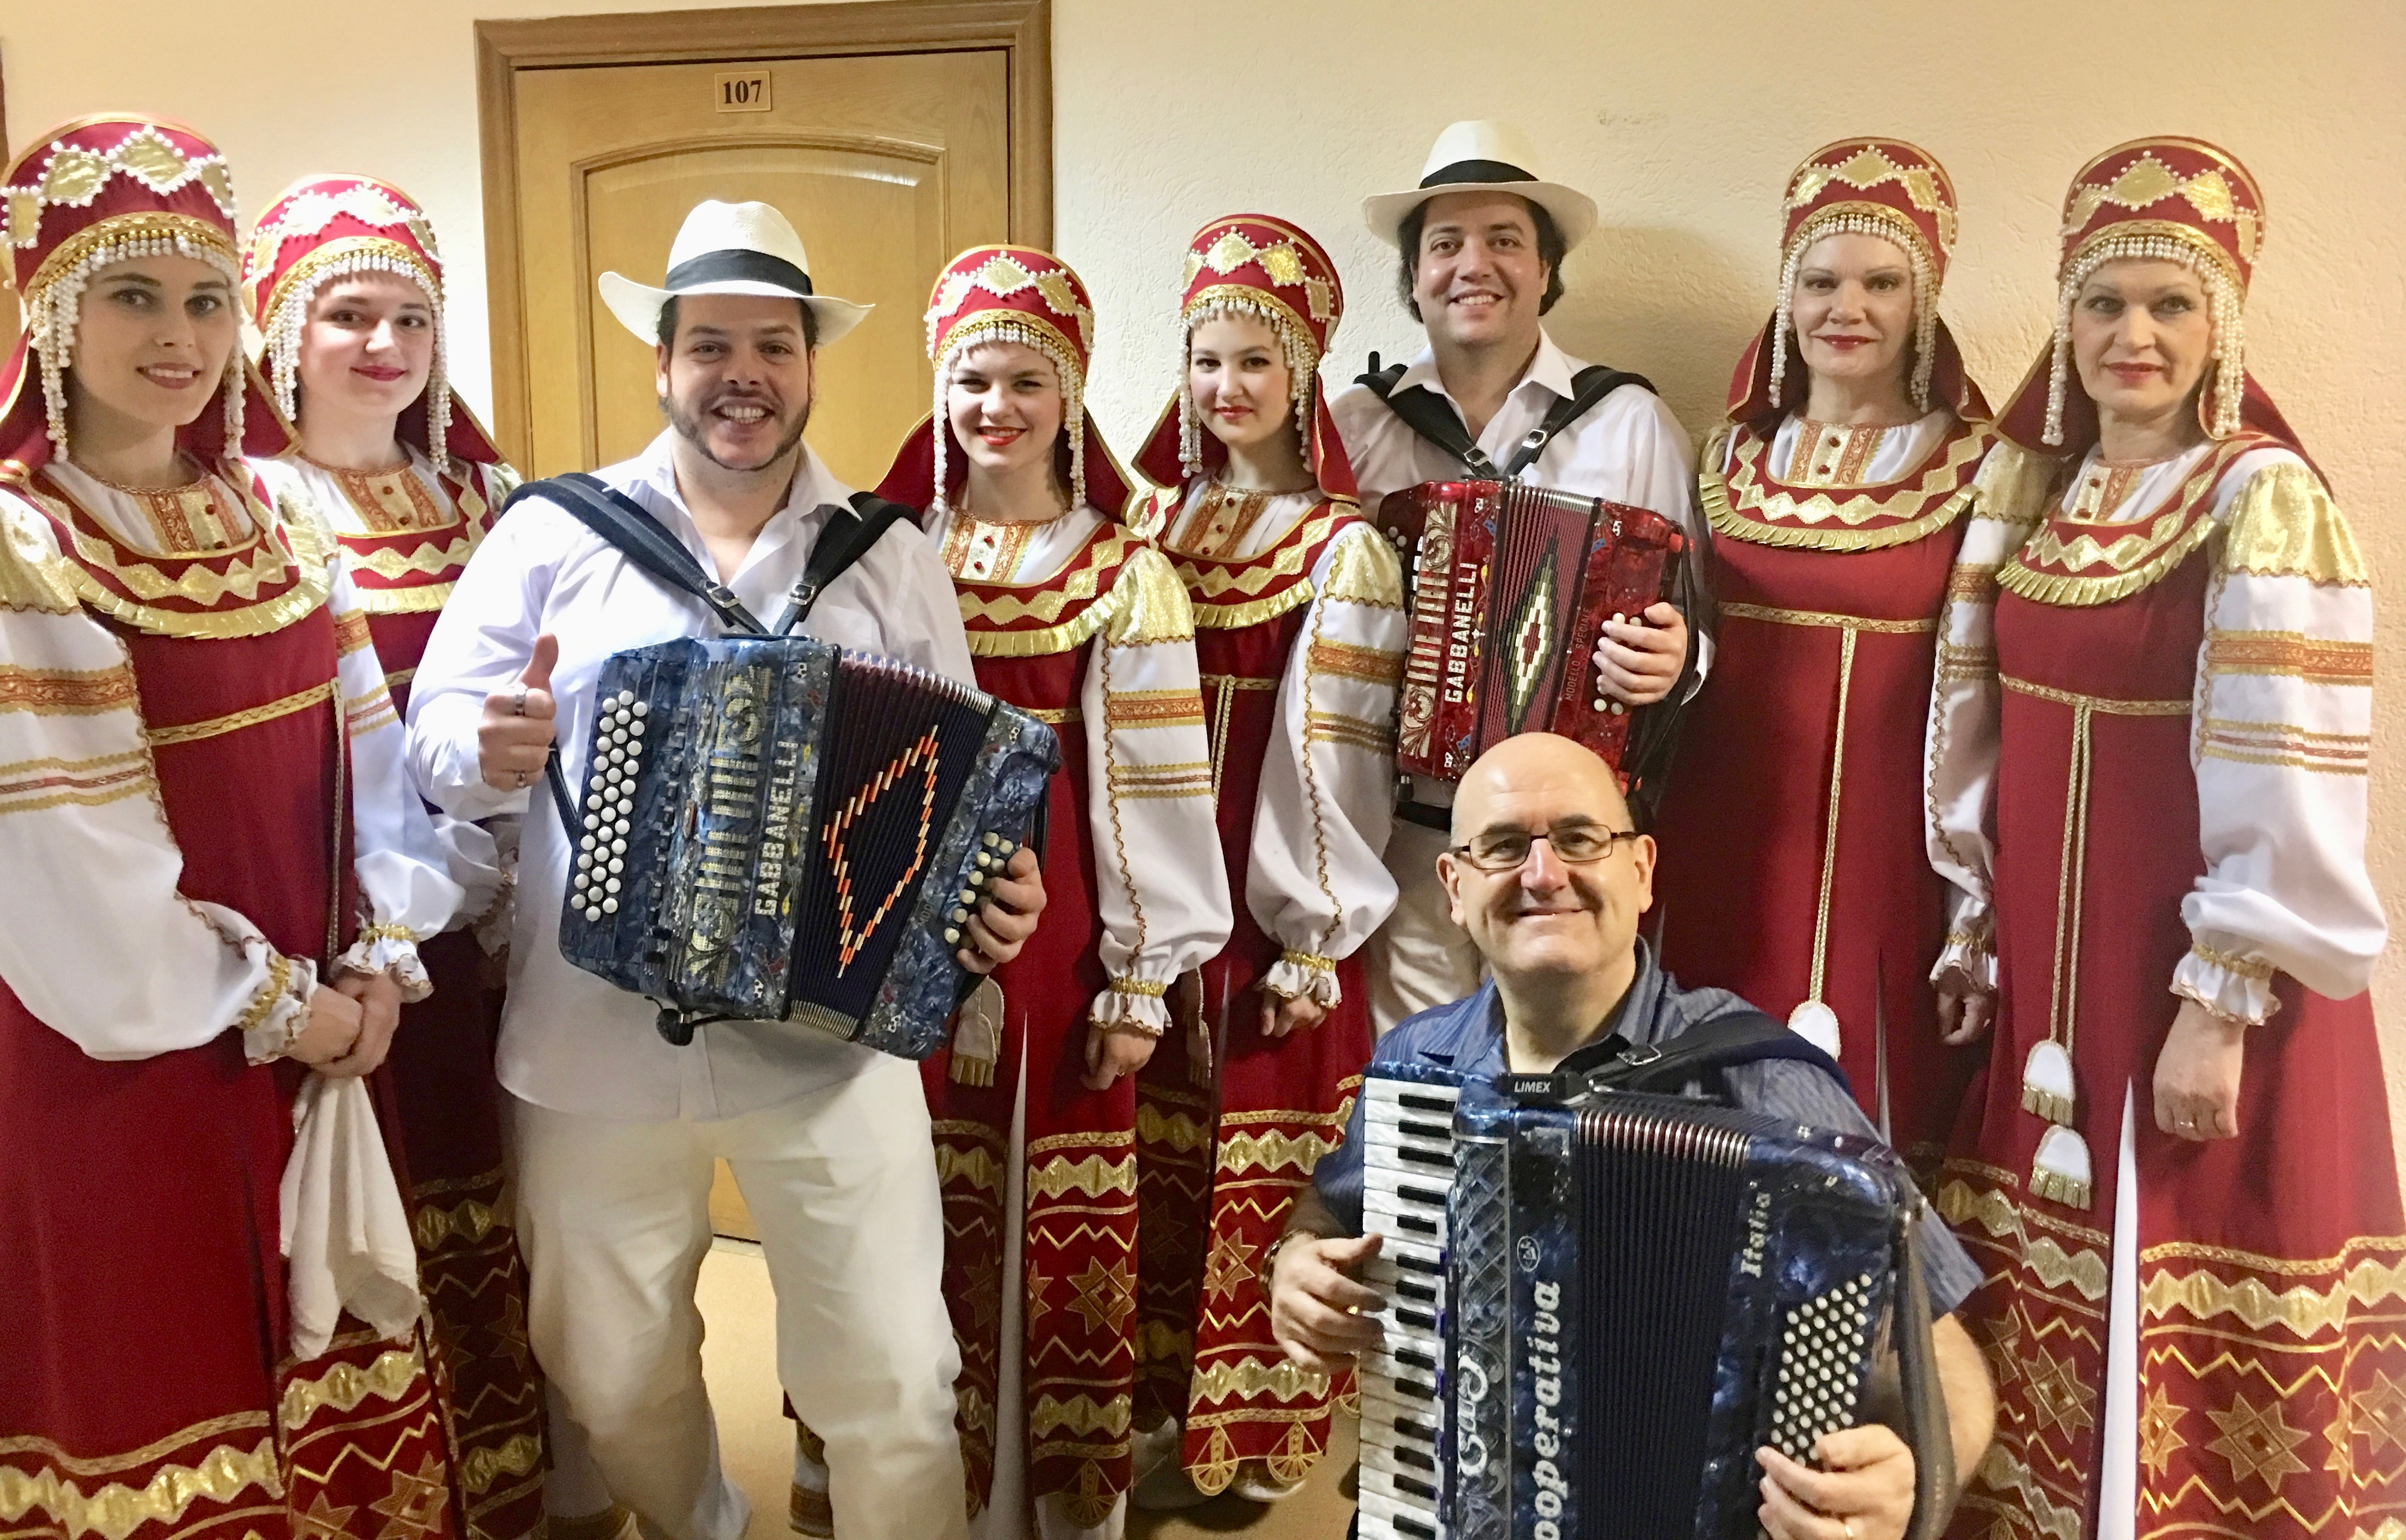 Accordionist flies the flag for Renfrewshire in Siberia